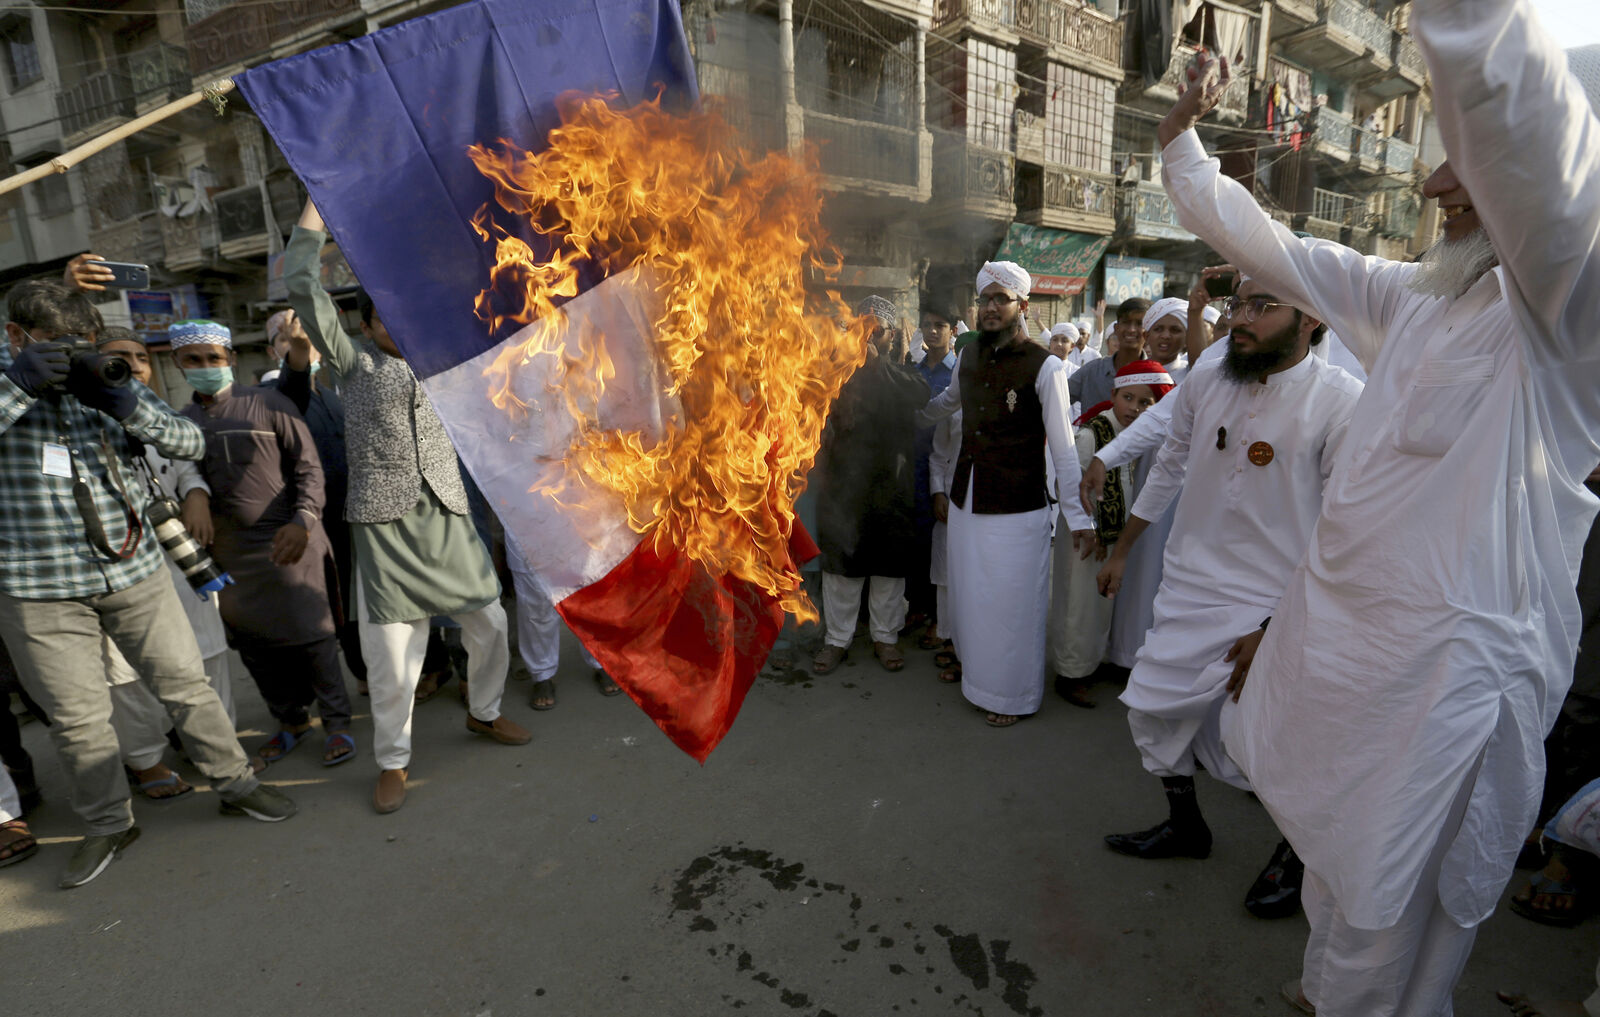 Supporters of religious group burn a representation of a French flag during a rally against French President Emmanuel Macron and republishing of caricatures of the Prophet Muhammad they deem blasphemous, in Karachi, Pakistan, Friday, Oct. 30, 2020.{ } (AP Photo/Fareed Khan)